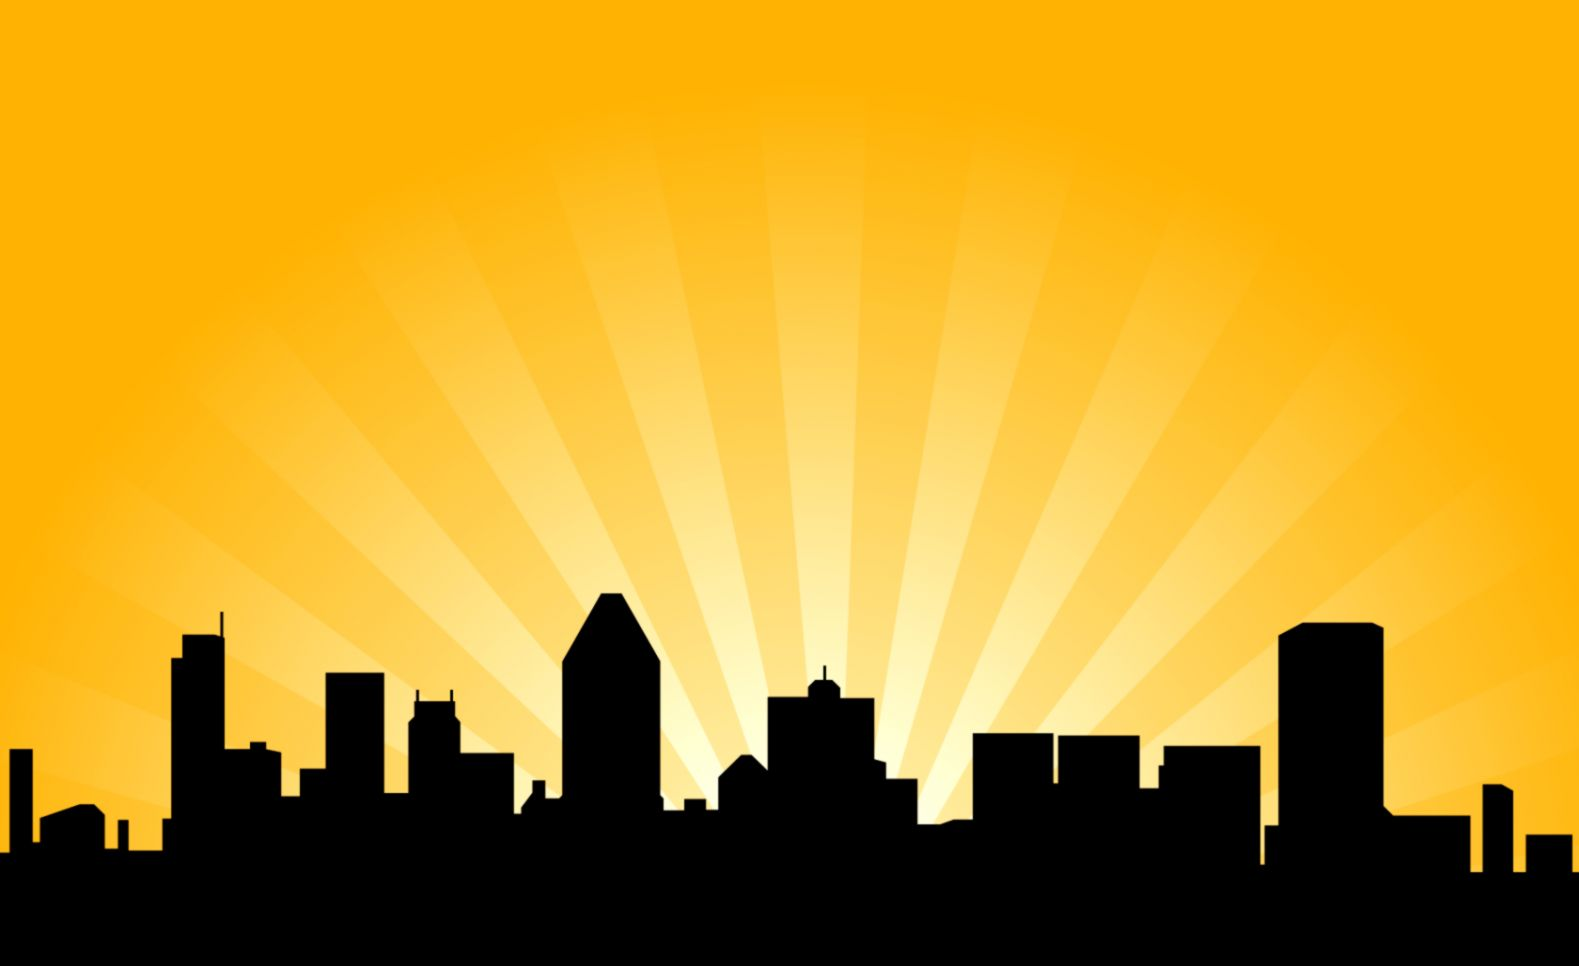 City Skyline Silhouette Clipart | Free download best City Skyline ...